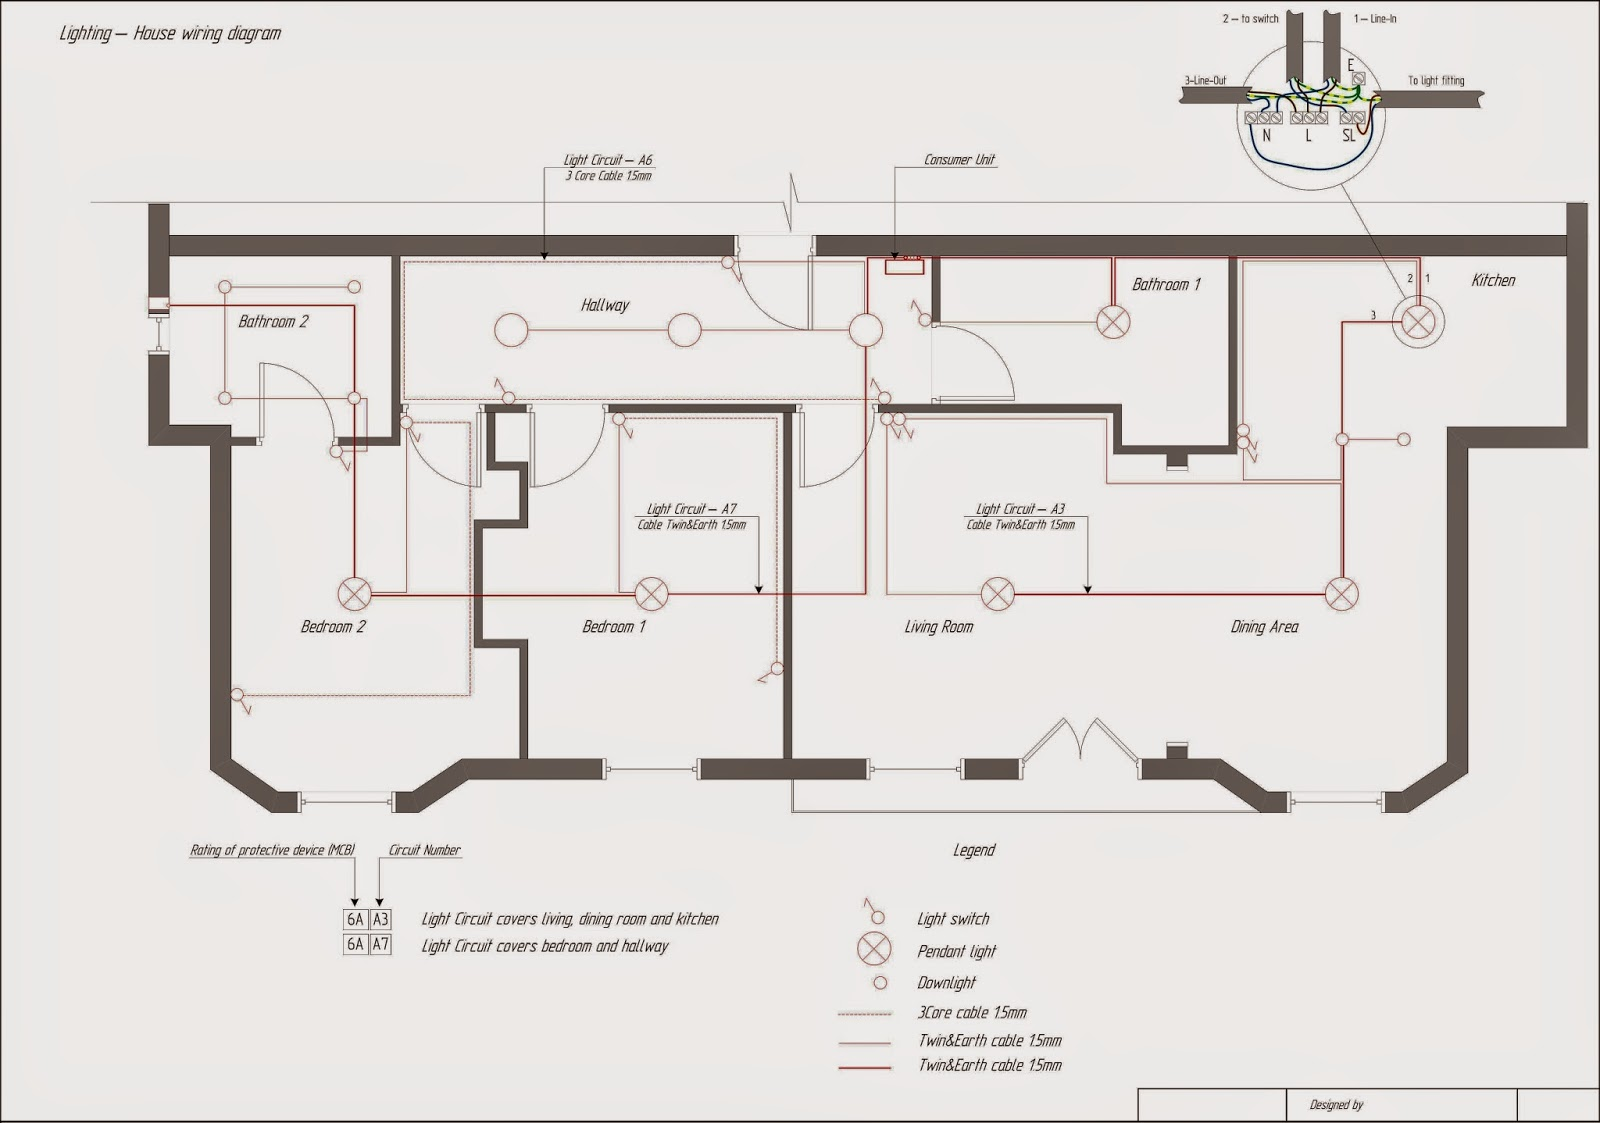 house wiring diagram | owner and manual home wiring diagram examples